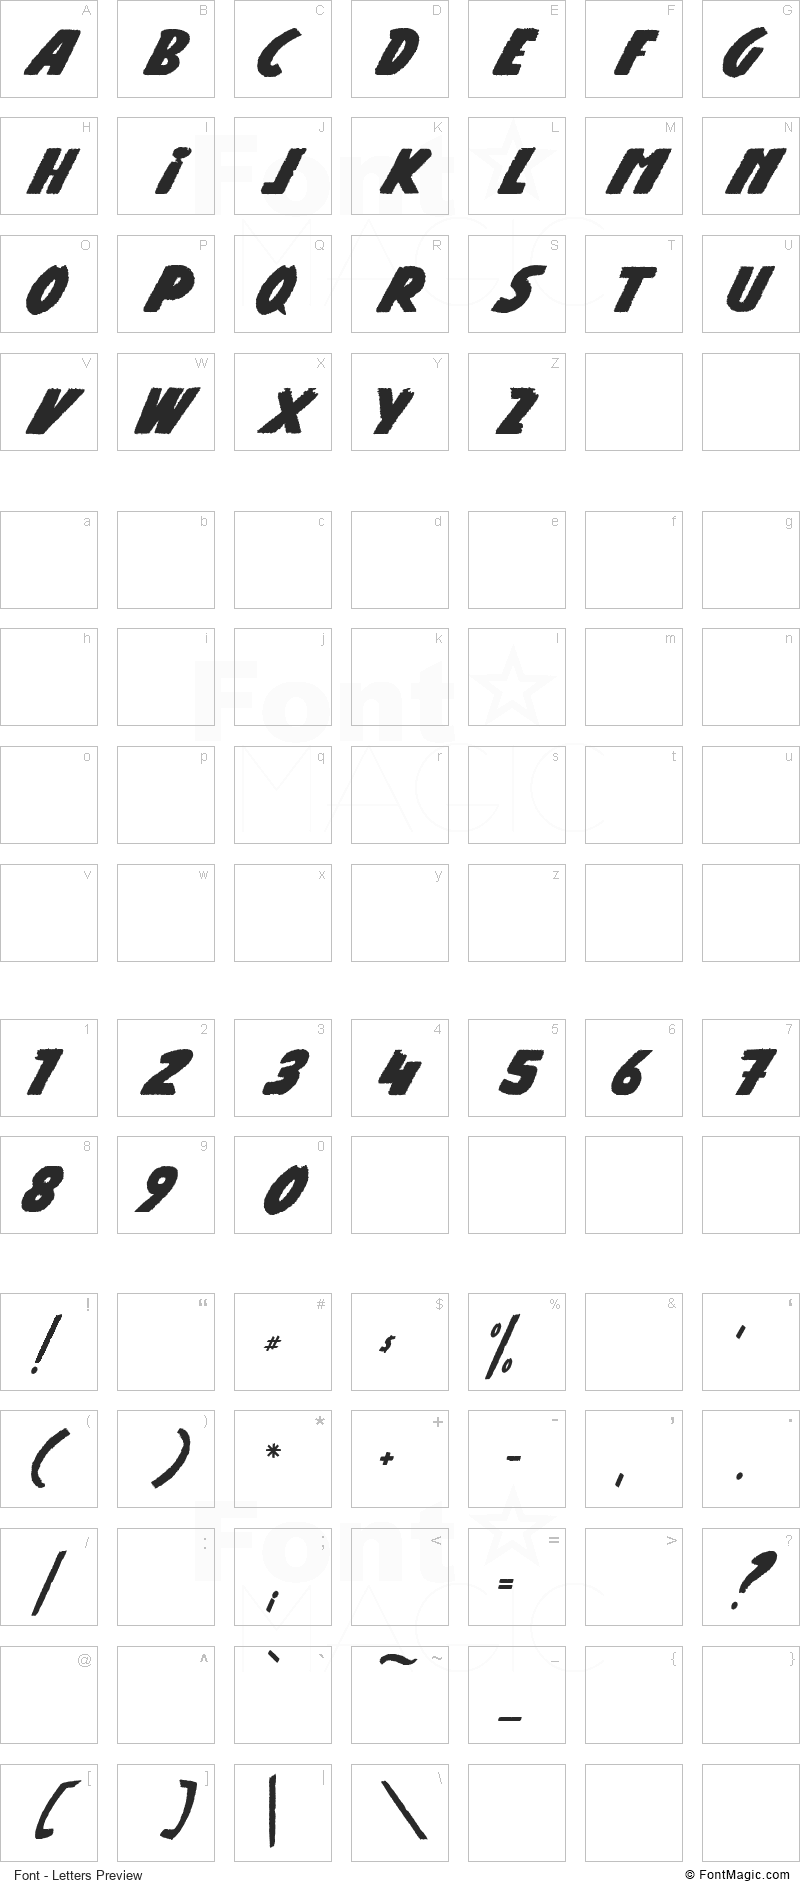 Road Of Deal Font - All Latters Preview Chart